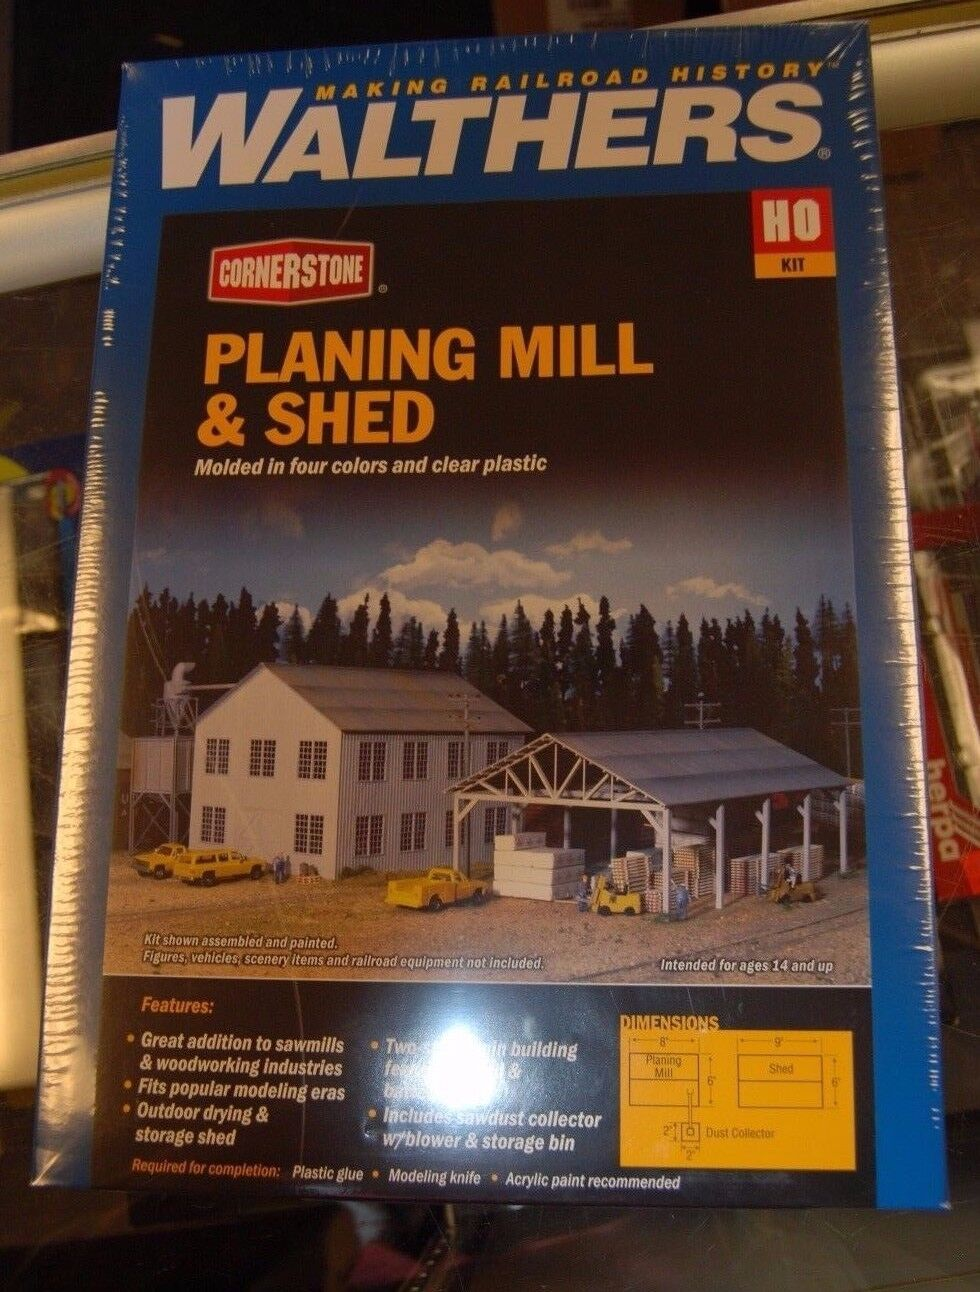 HO Walthers Cornerstone kit 9333059  Planing Mill & Shed